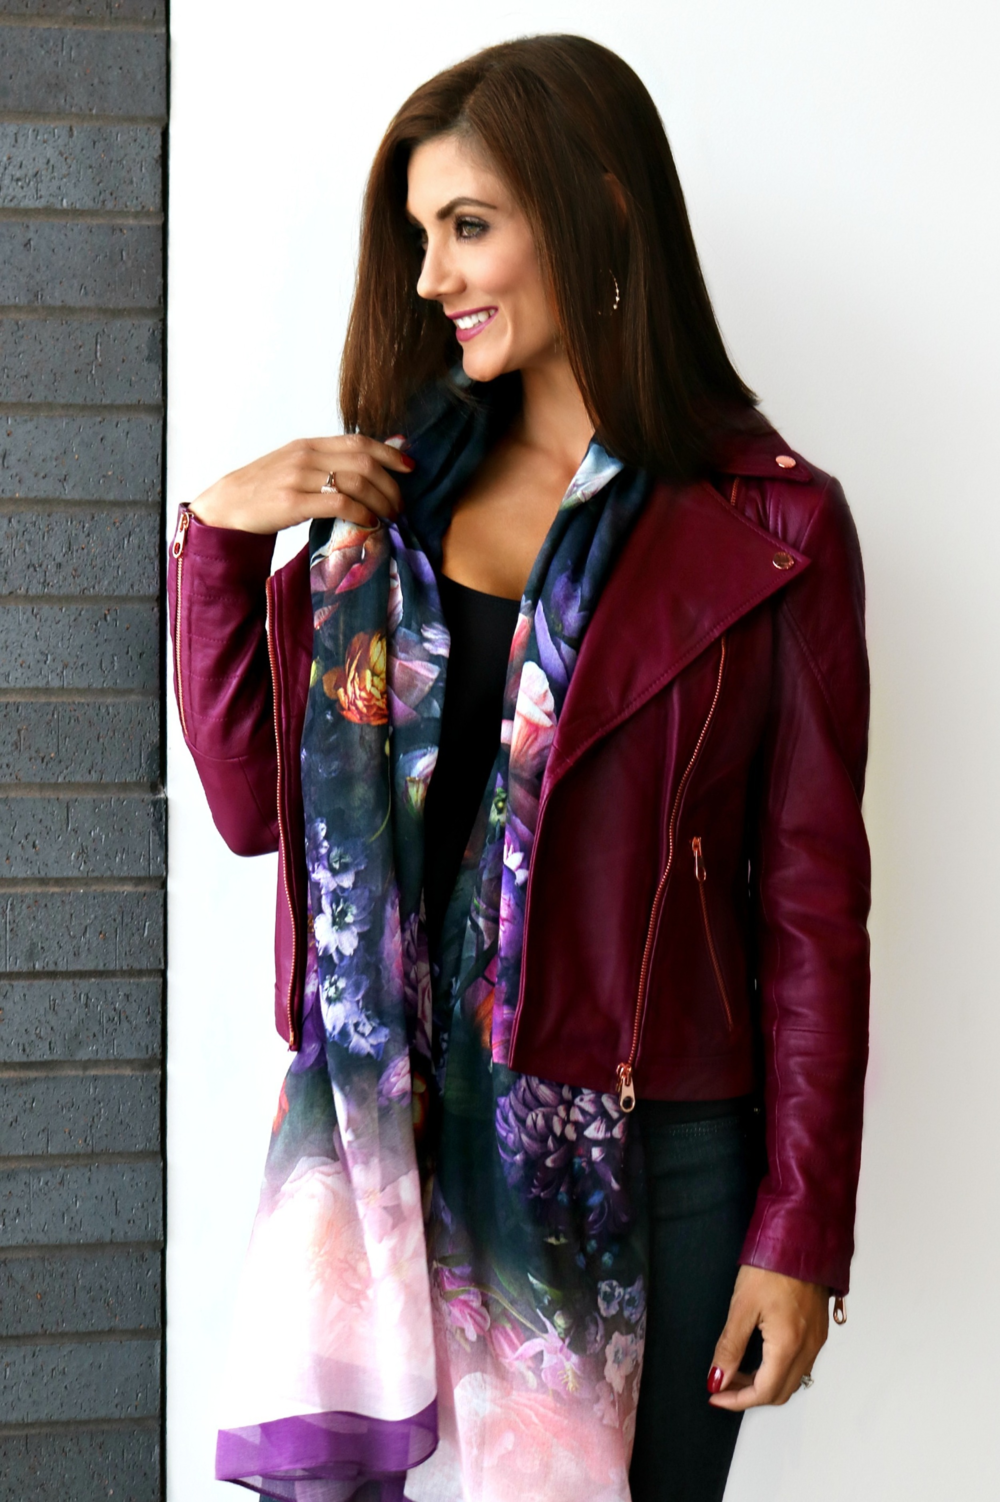 Ted Baker Leather Jacket and Floral Scarf Available In Store Only